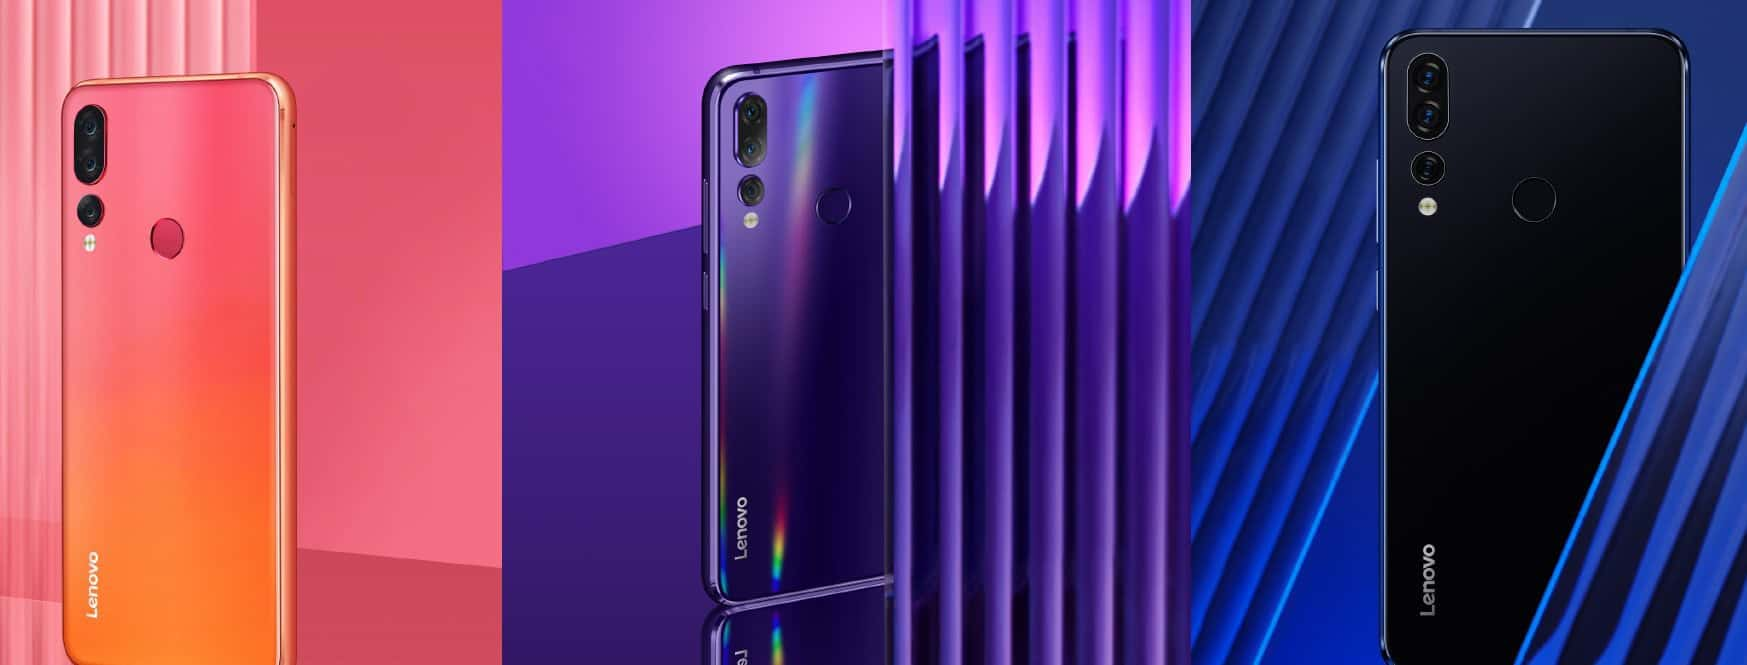 Lenovo z5s promotional banner leak reveals snapdragon 710 soc and 92.6% microporous drop screen